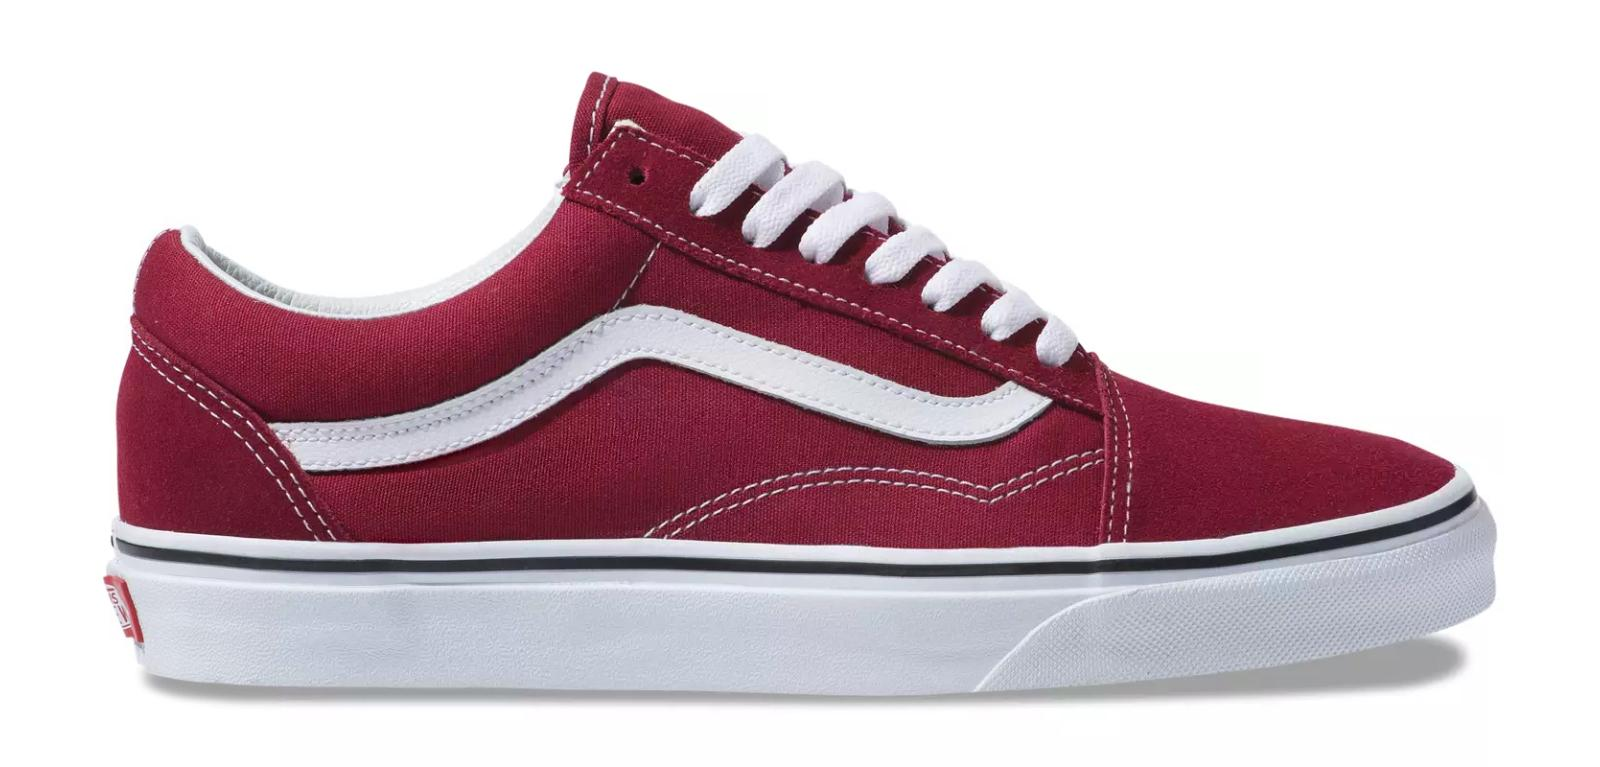 Giày Sneaker Vans Big Size Old Skool Rumba Red